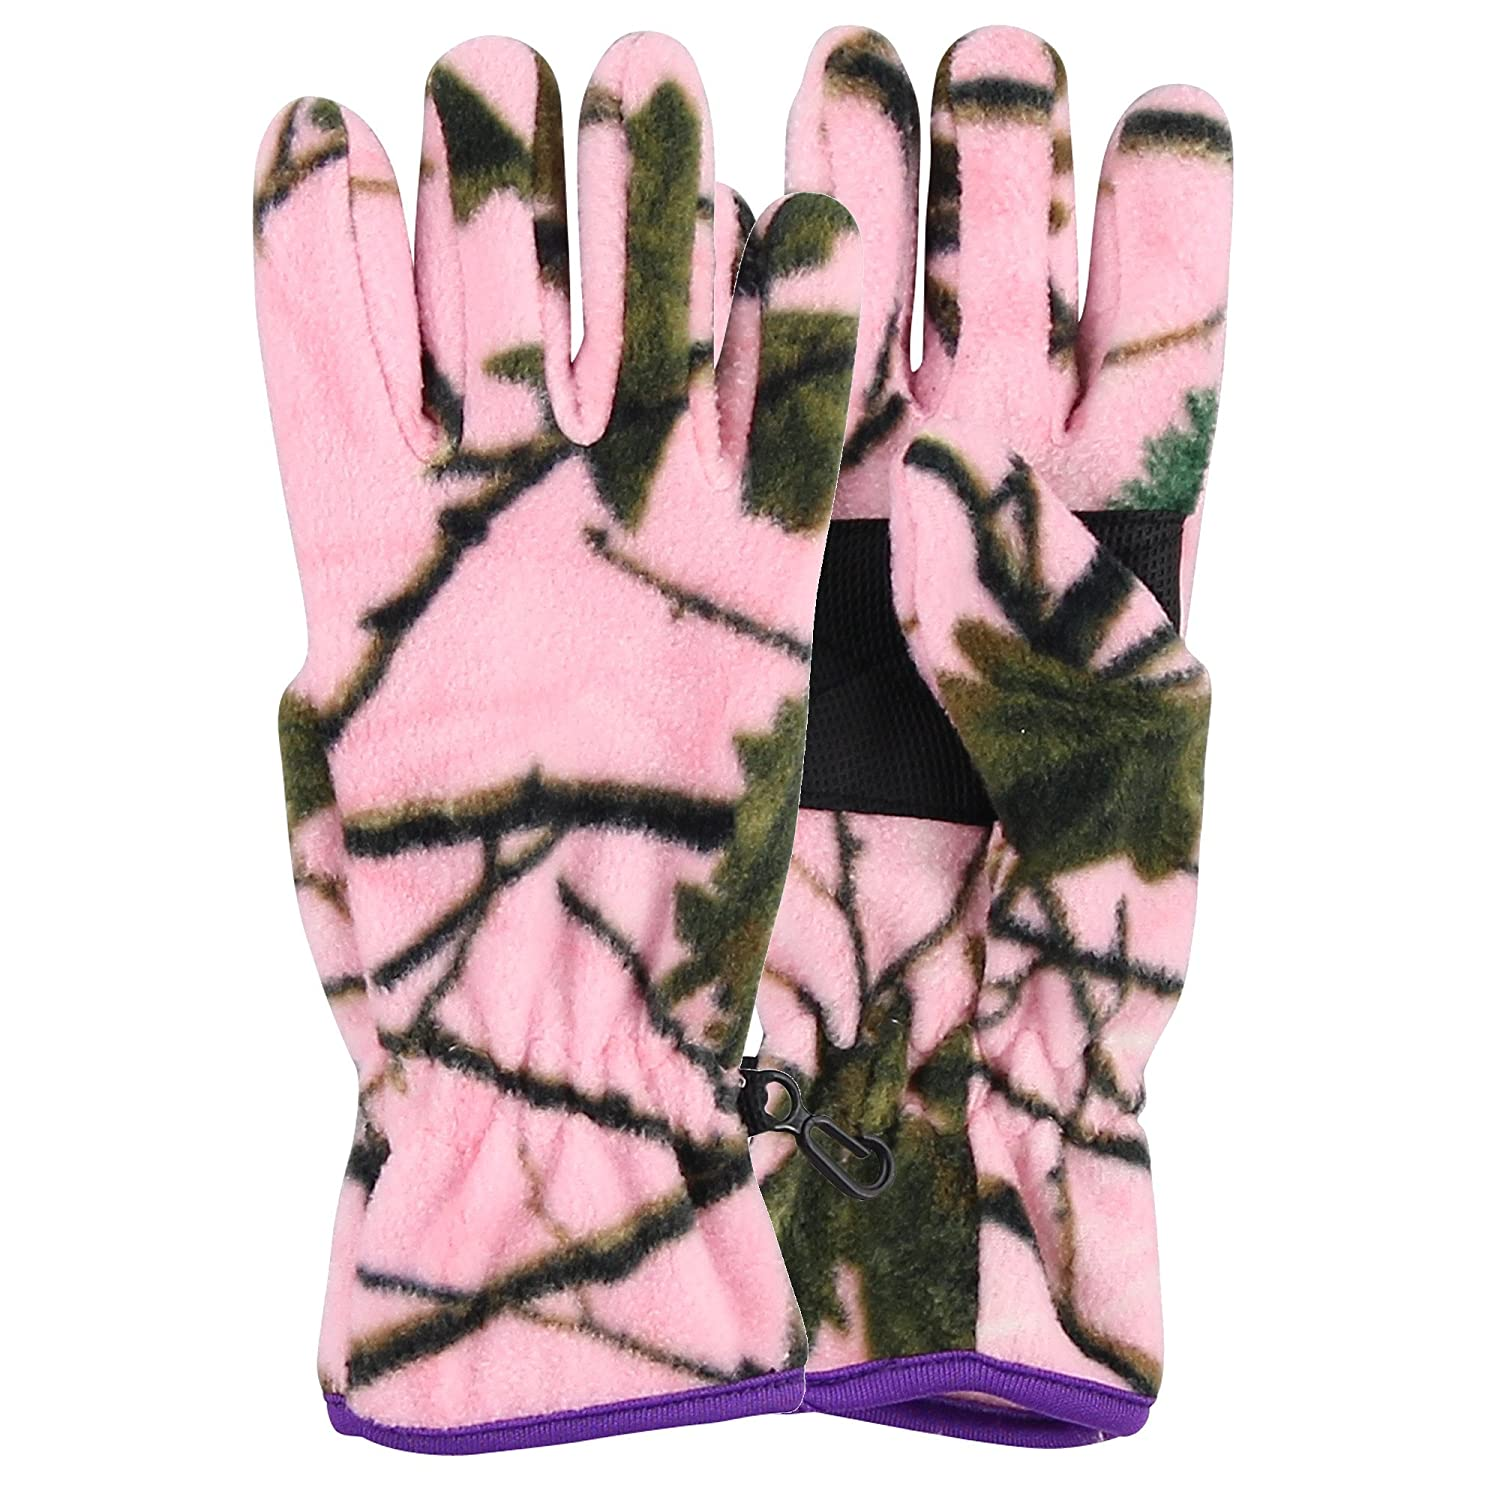 Women's Fleece Pink Camoflage Winter Gloves (Pink, Medium) Grand Sierra